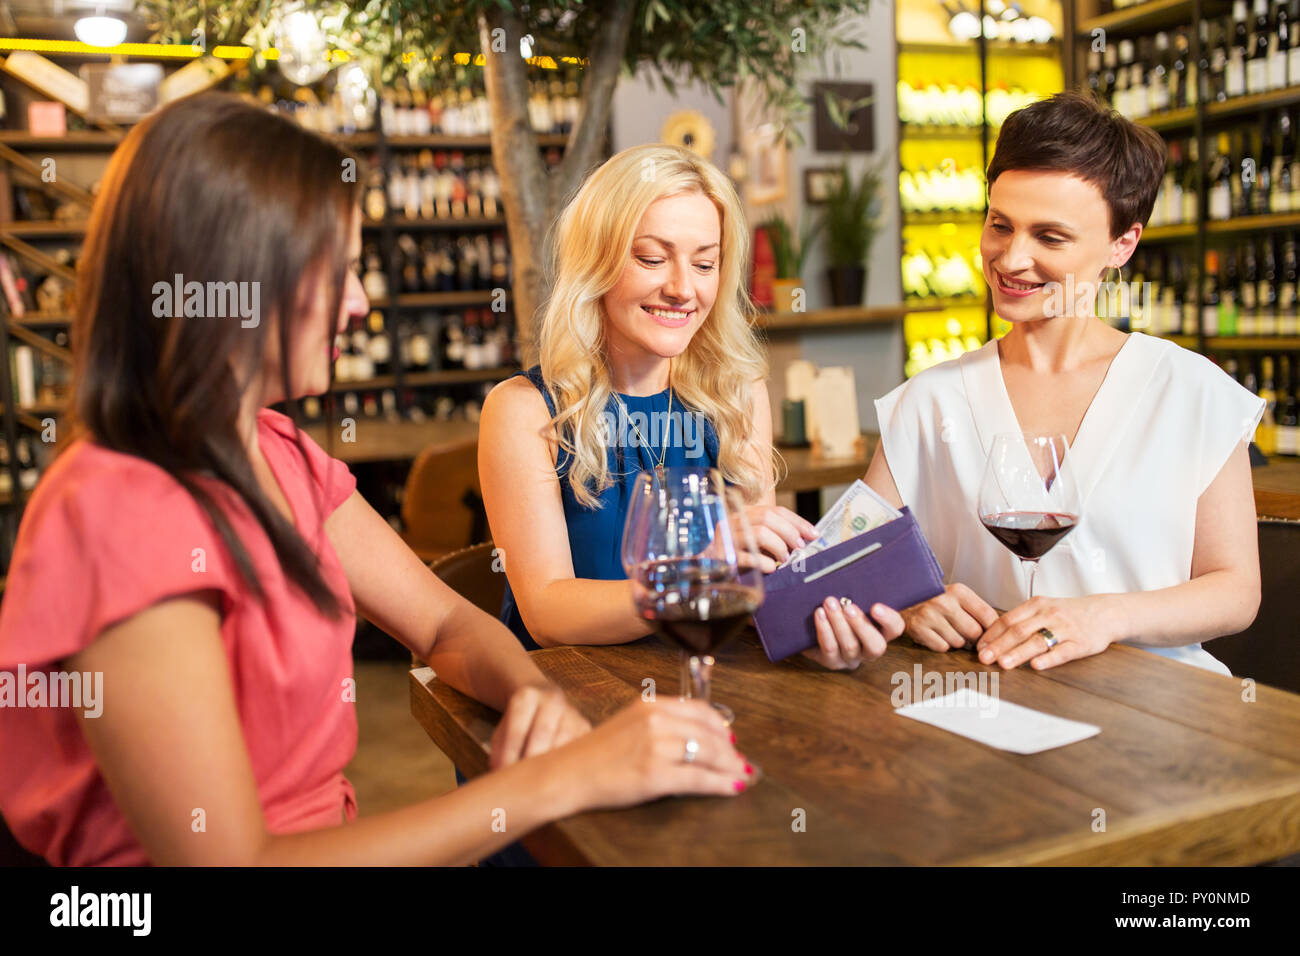 Women Paying Bill At Wine Bar Or Restaurant Stock Photo